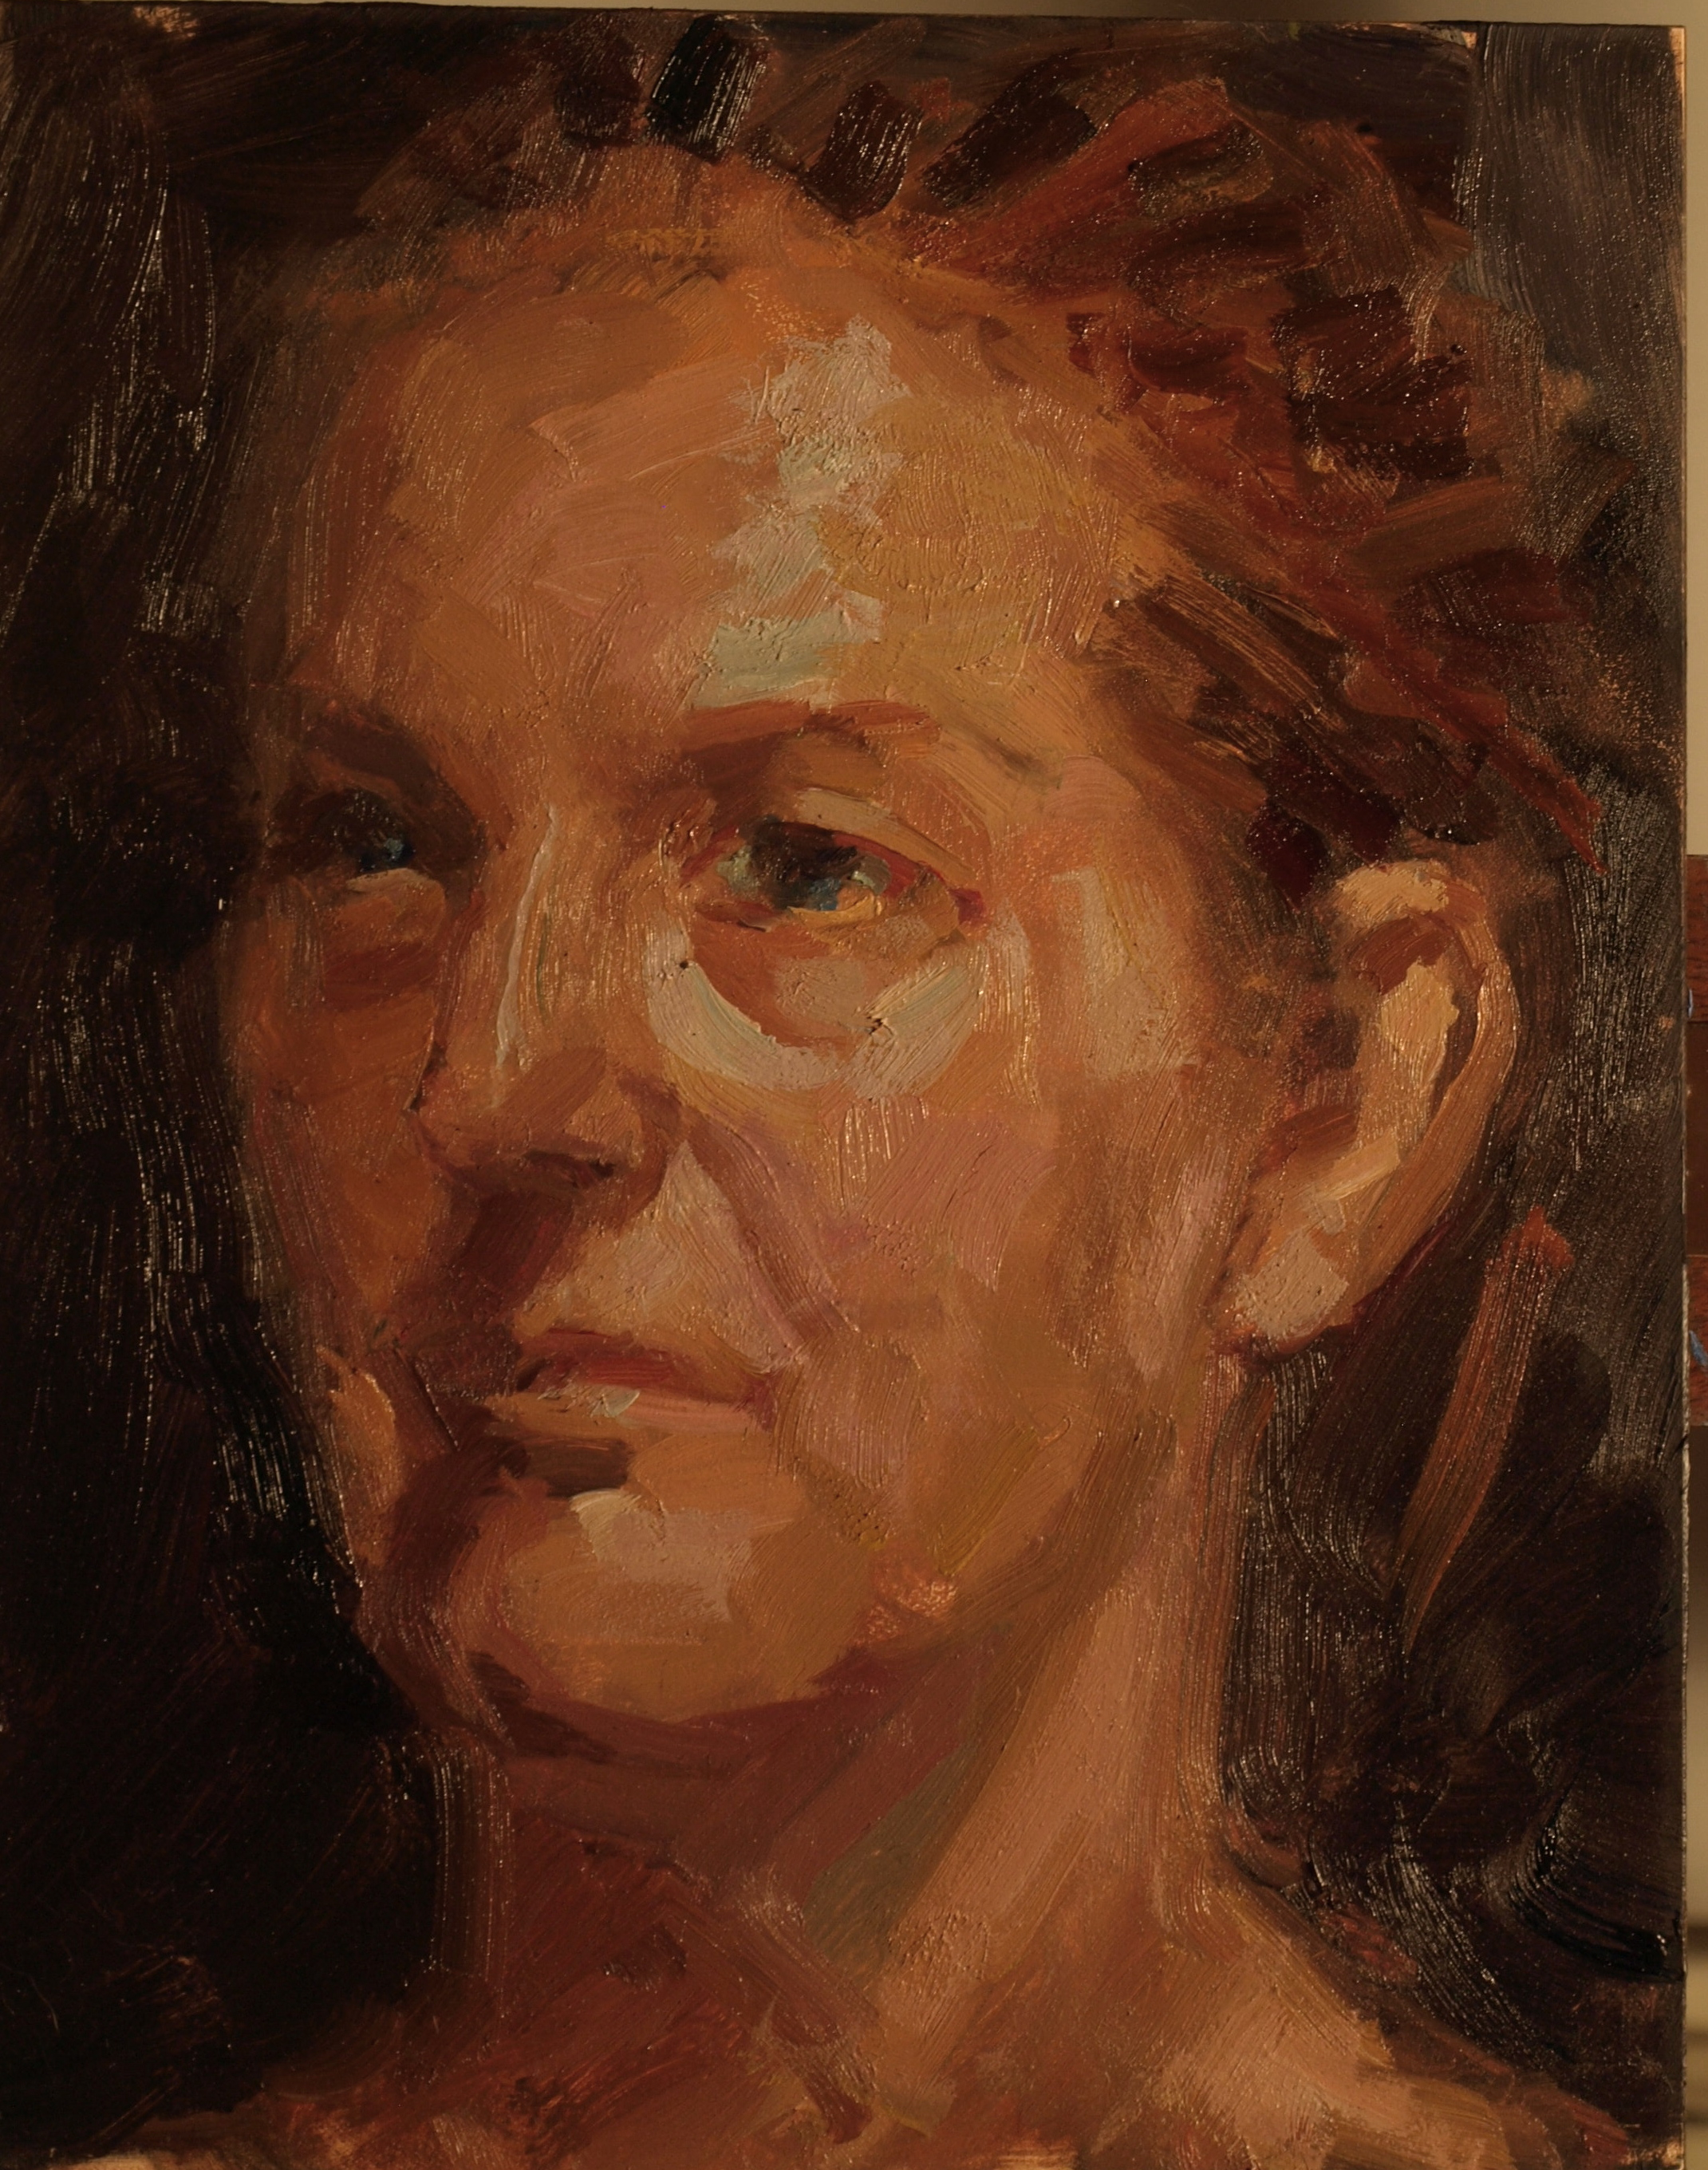 Head Study - Martine, Oil on Canvas on Panel, 10 x 8 Inches, by Susan Grisell, $150